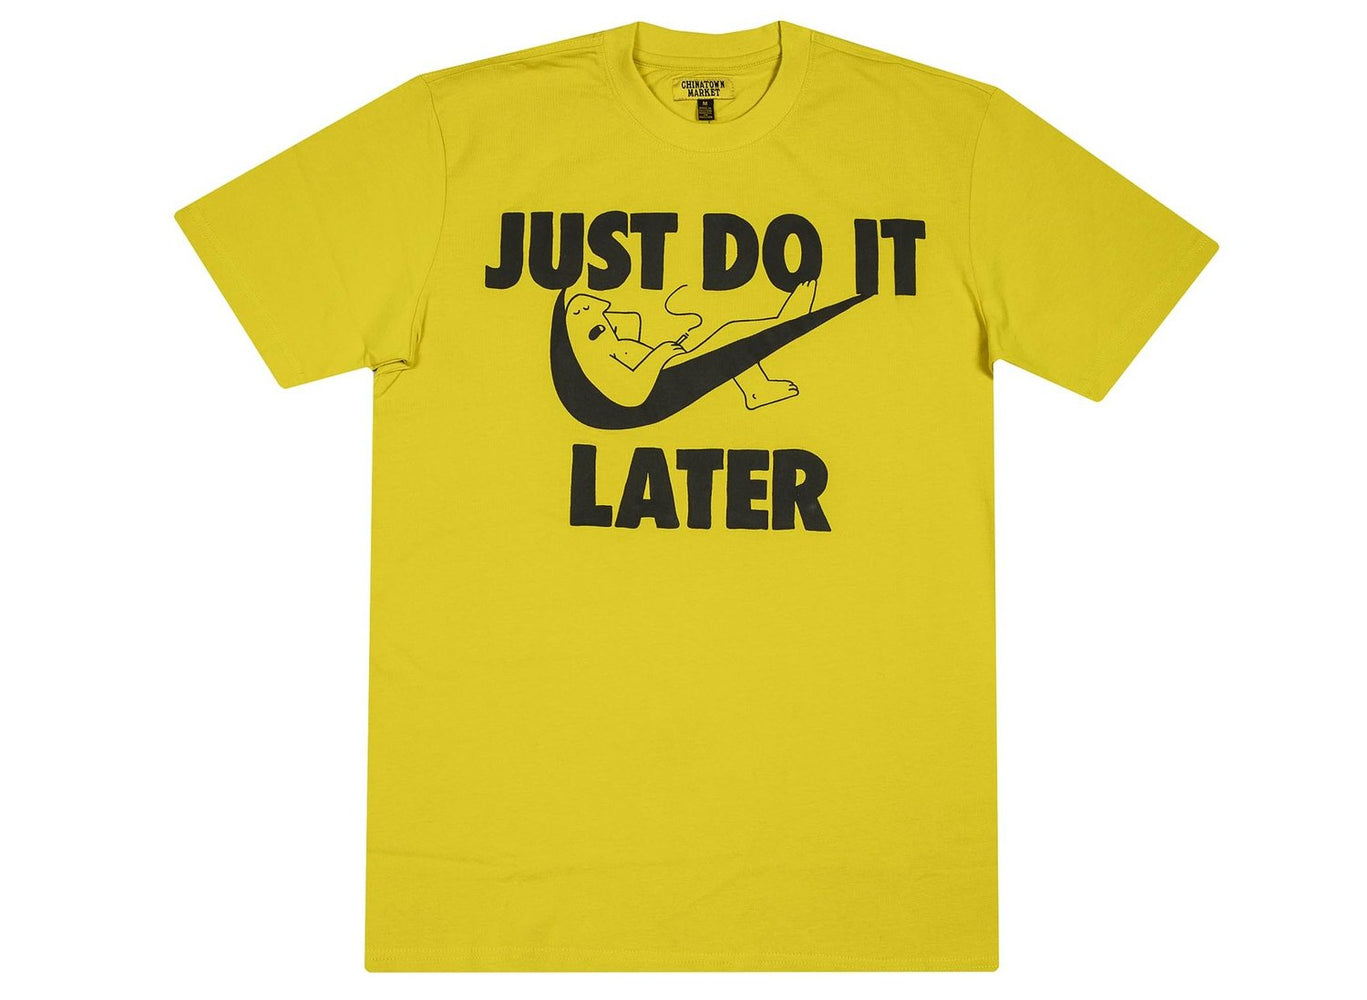 Chinatown Market Just Do It Later Tee